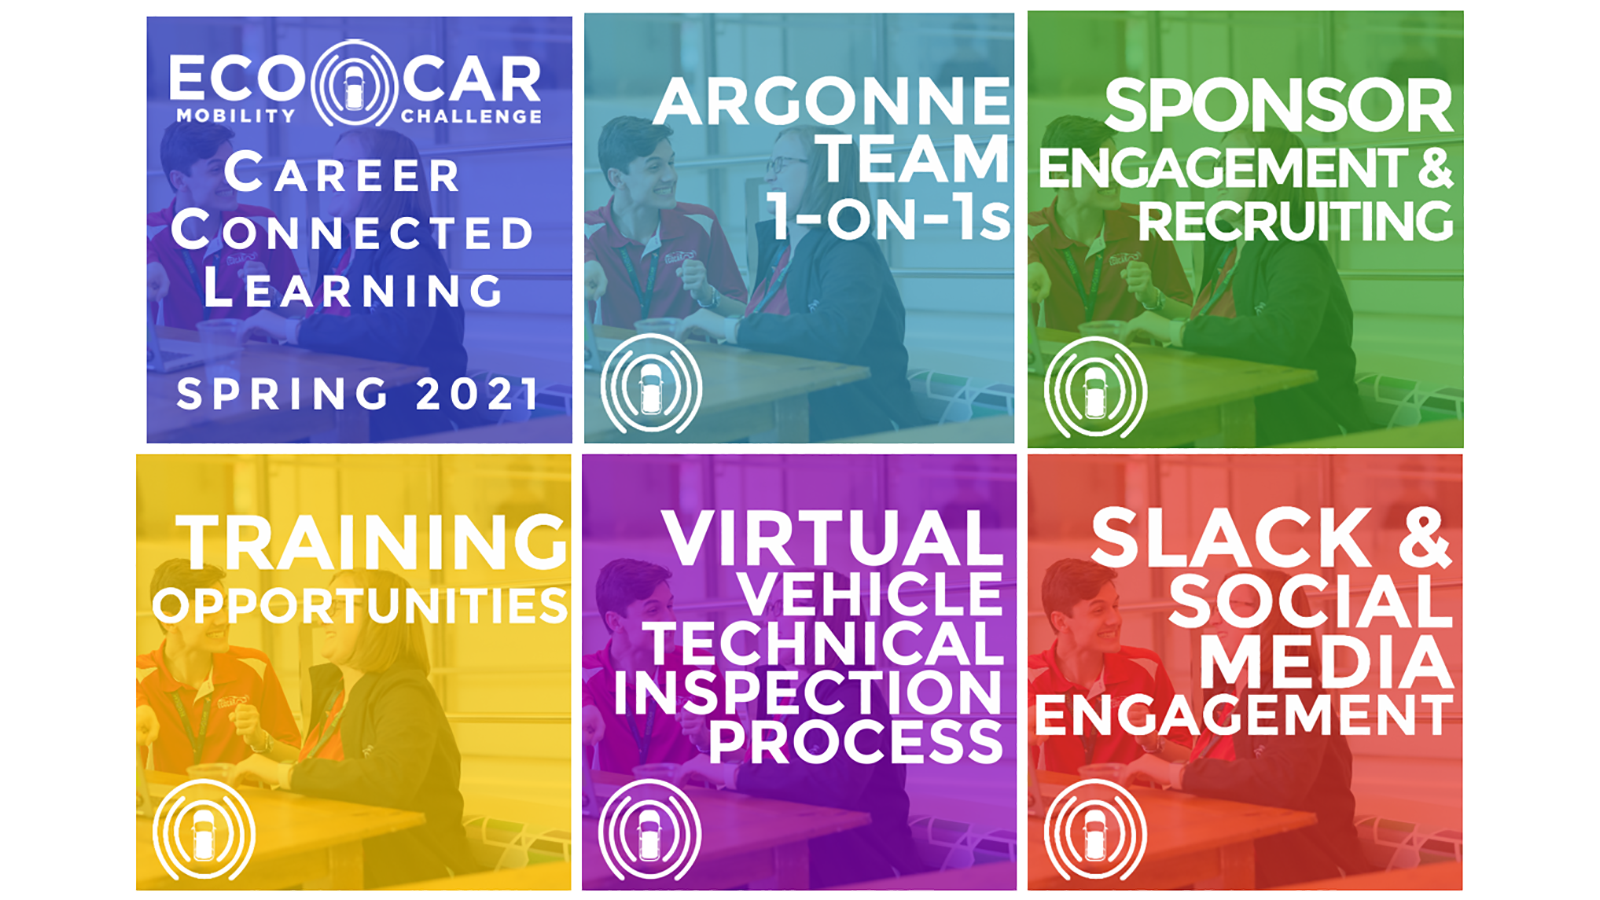 EcoCAR-Career Connected Learning, Spring 2021